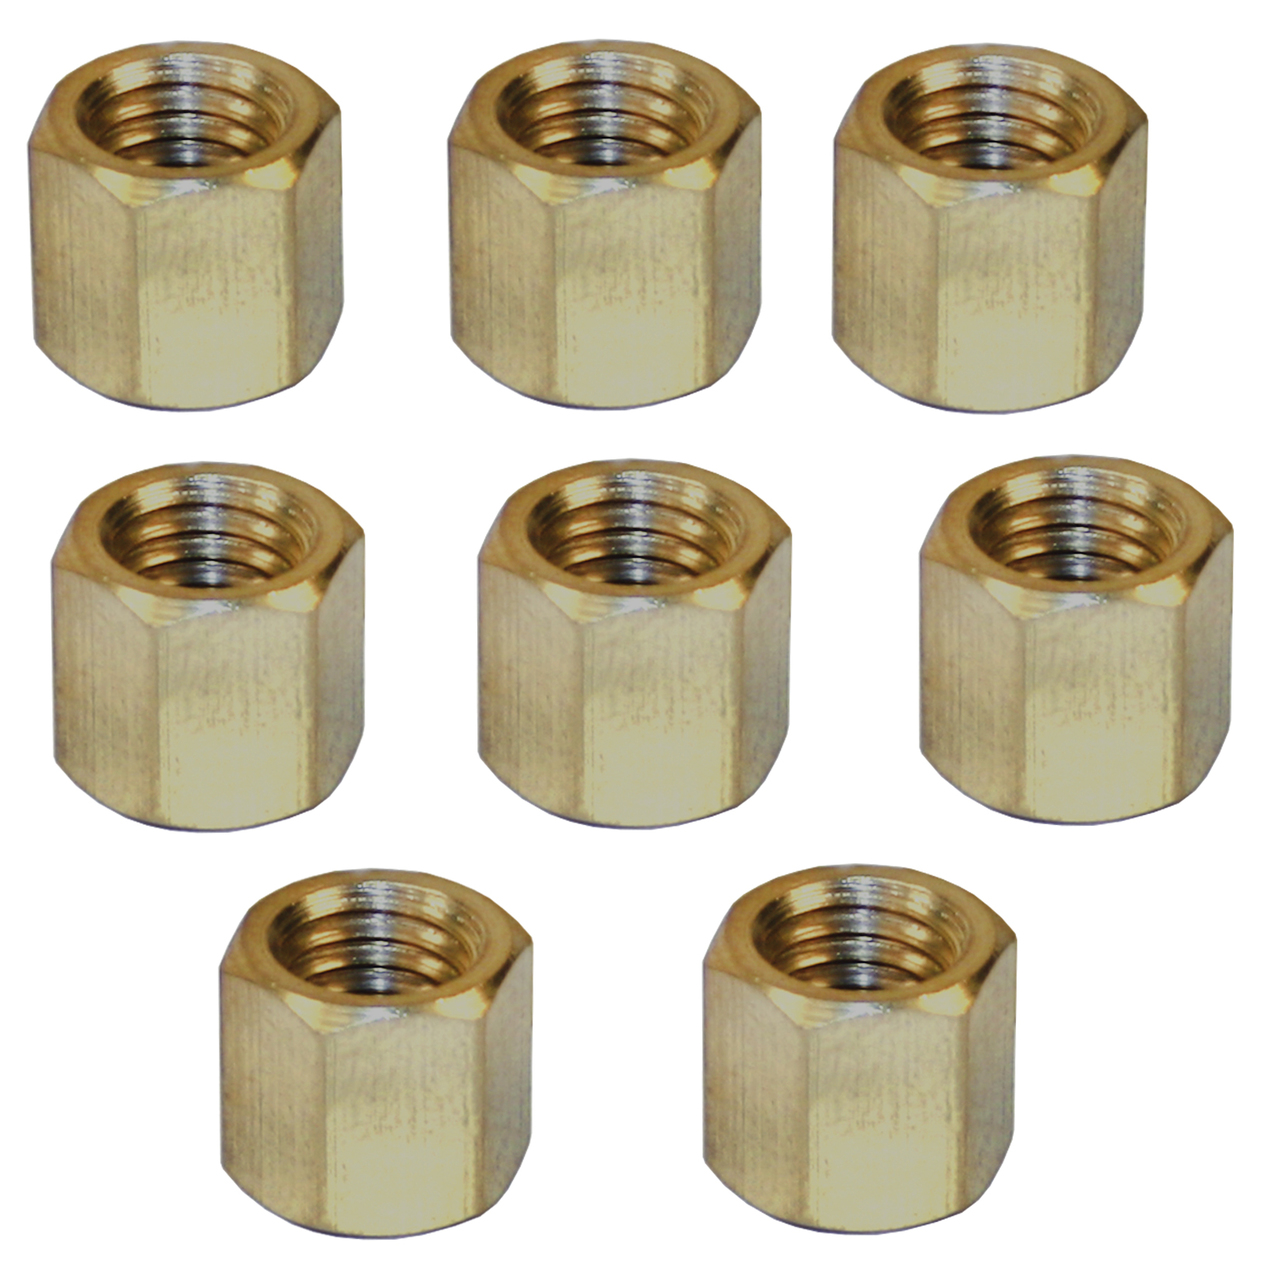 Empi 43-6051 Vw Bug, Ghia Brass Exhaust Nut, 8mm-1 25mm, 11mm Hex Head, Set  Of 8